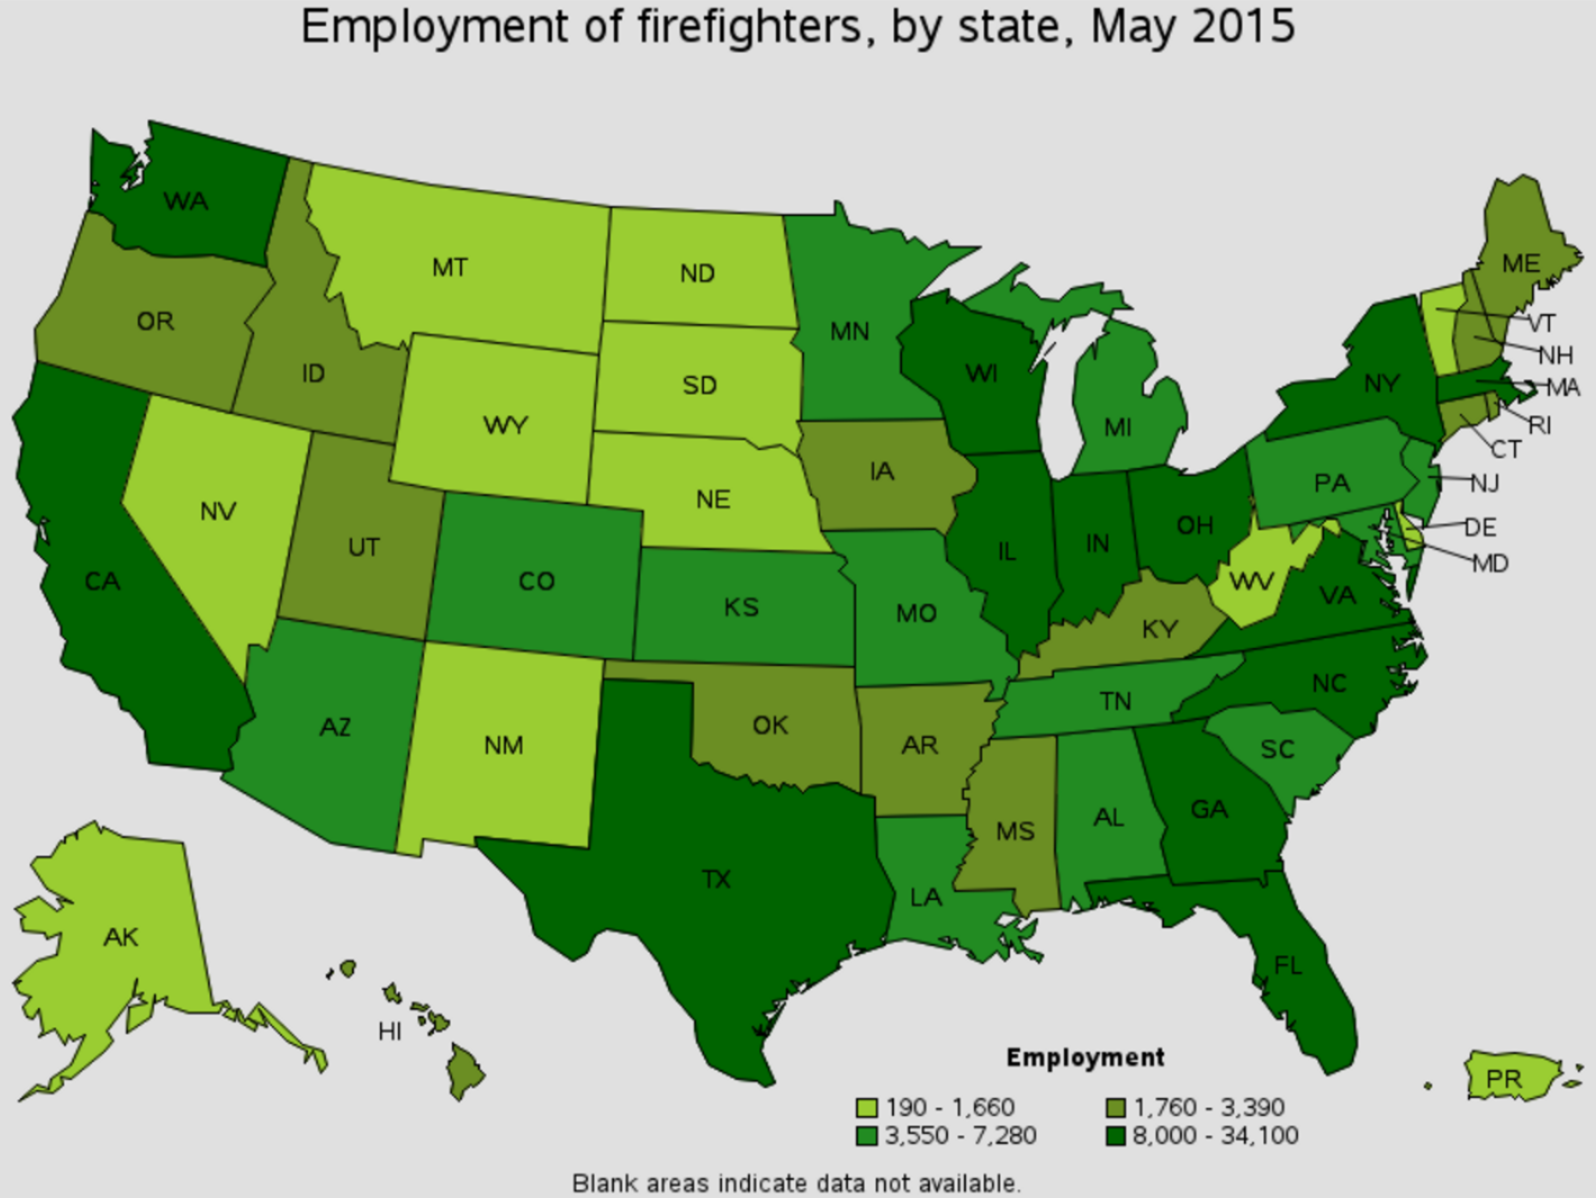 firefighter job outlook by state Joliet Illinois